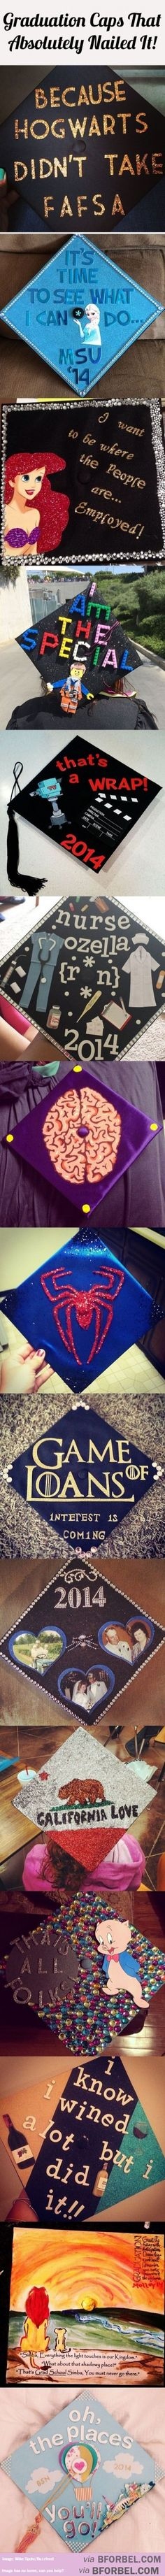 15 Awesome Graduation Caps That Just Nail The Graduation Spirit�